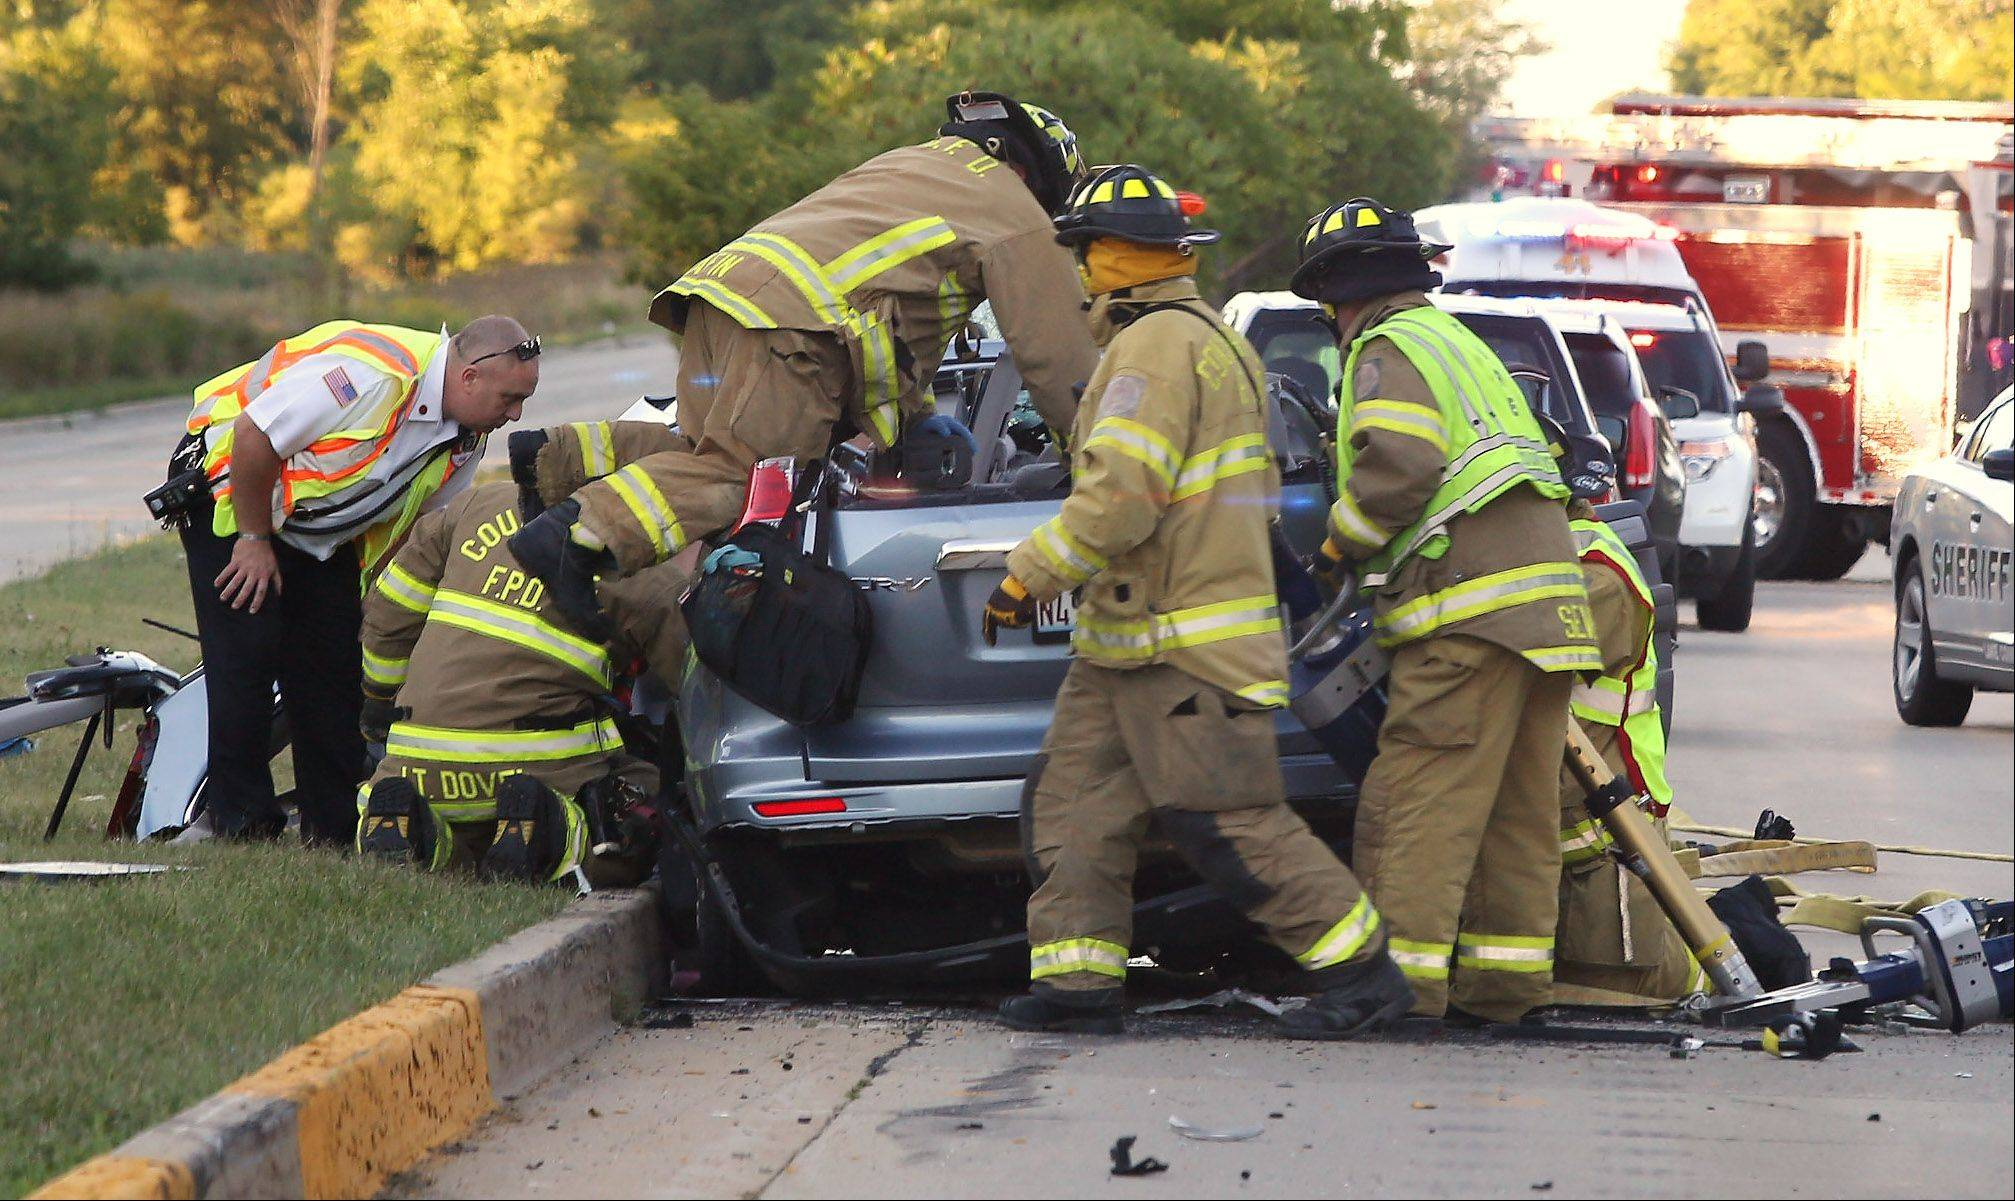 Countryside firefighters work to extricate a person from an SUV after a multiple vehicle accident on northbound Route 83 at Westmoreland Road in Long Grove on Thursday.